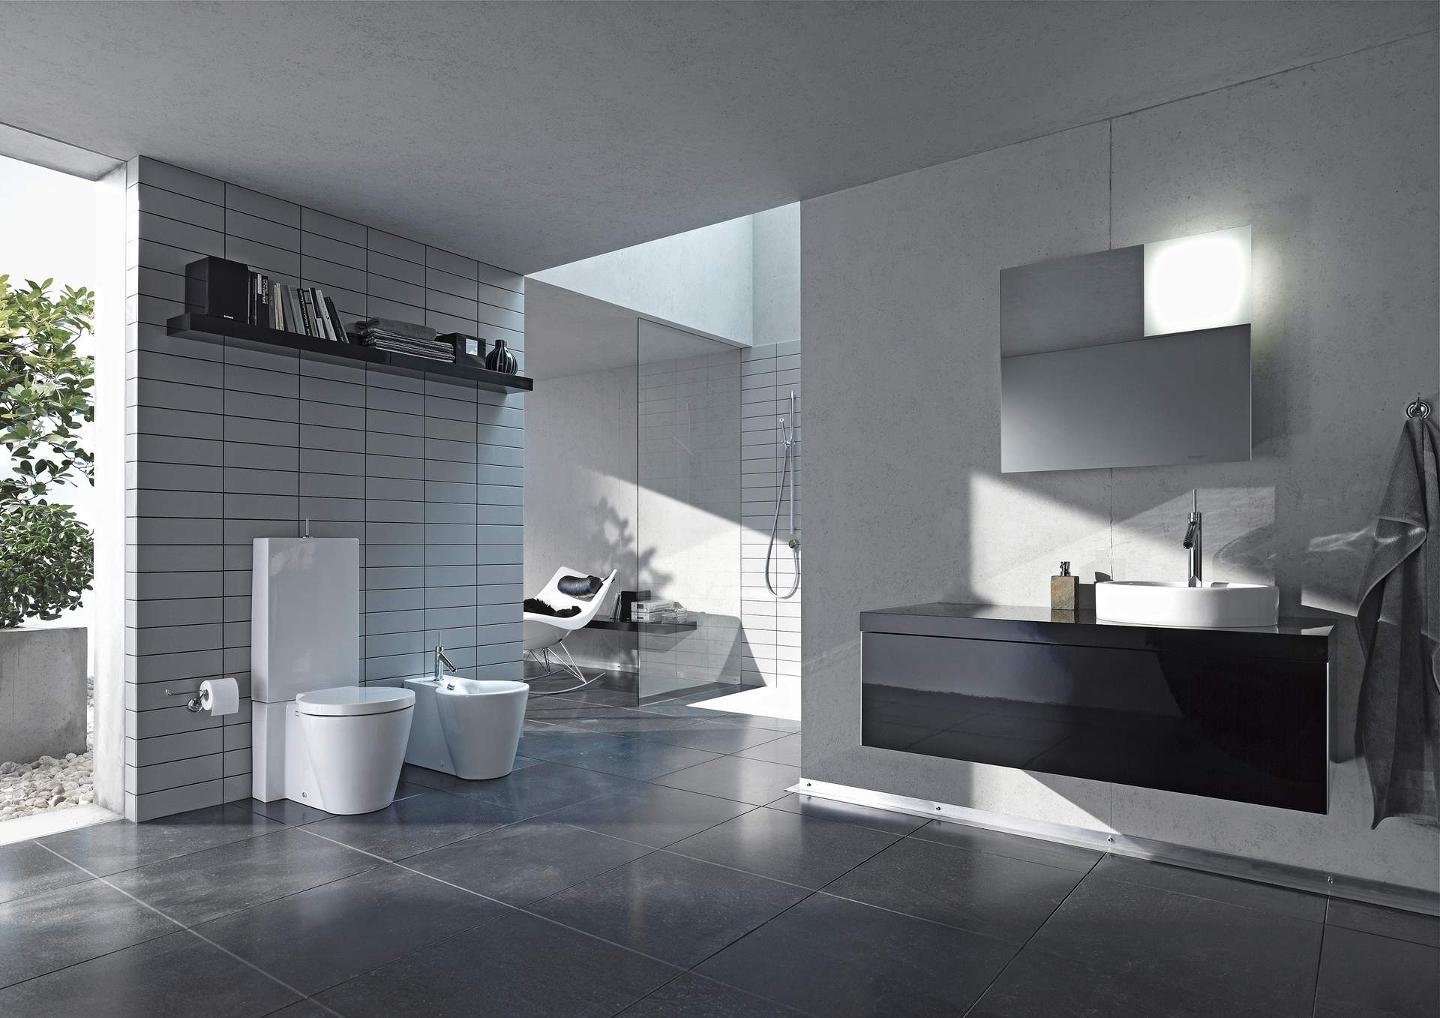 starck 1 waschtische wcs bidets urinale duravit. Black Bedroom Furniture Sets. Home Design Ideas